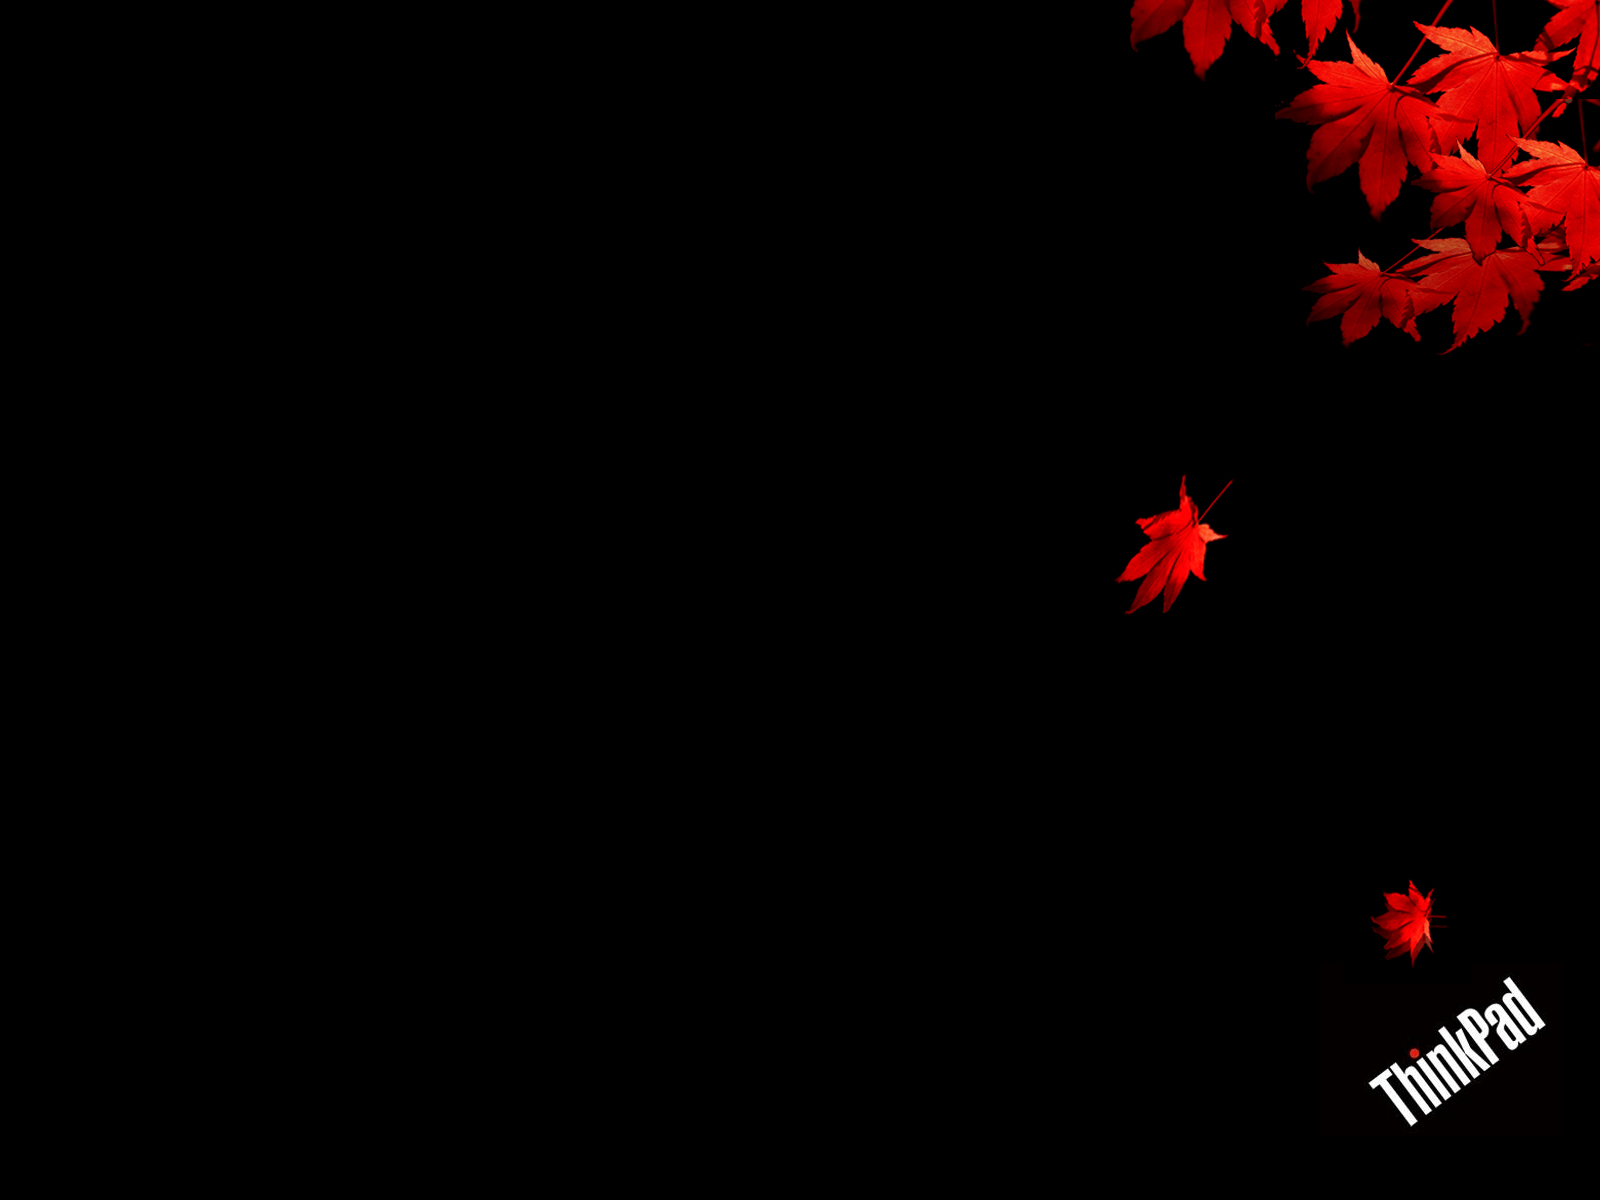 thinkpad wallpapers wallpaper - photo #3